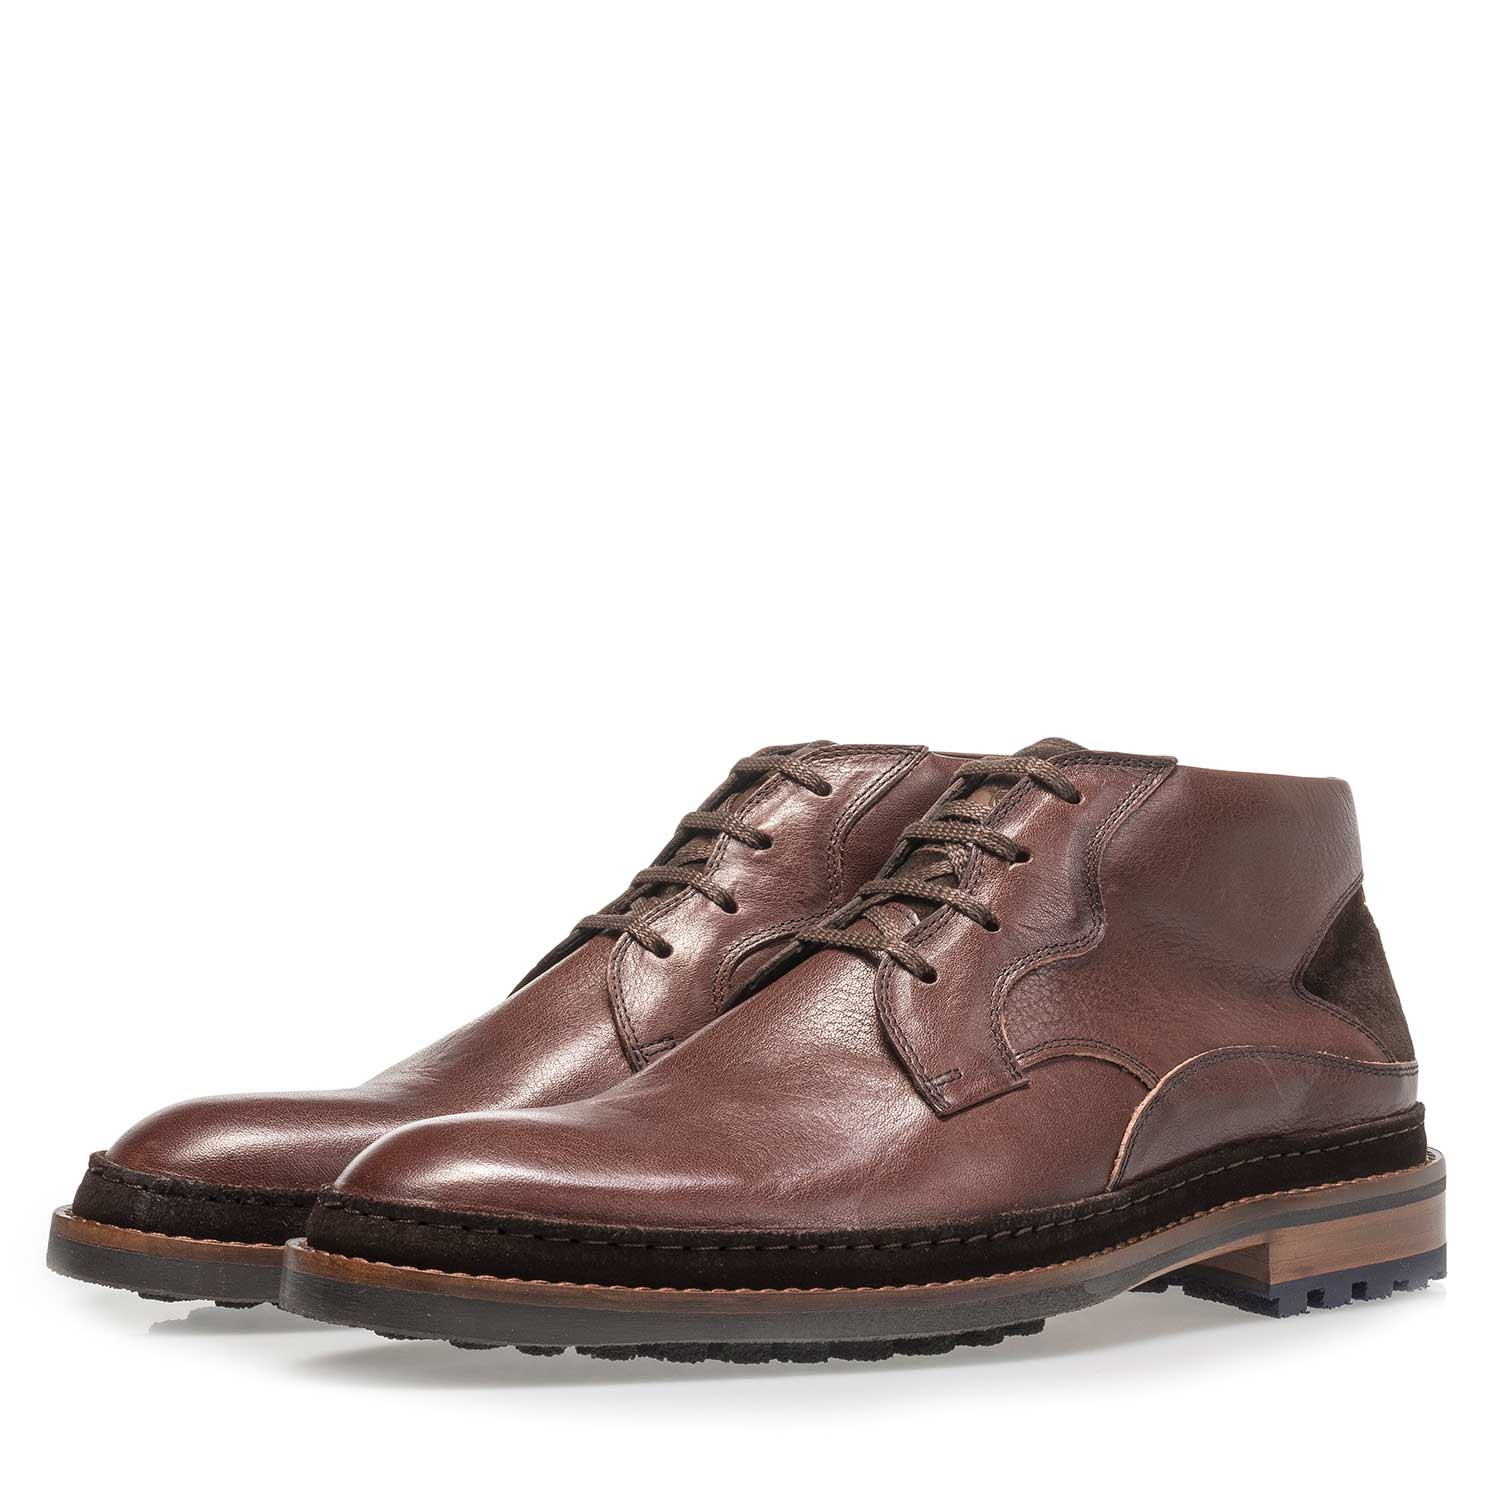 10509/00 - Red-brown calf leather boot